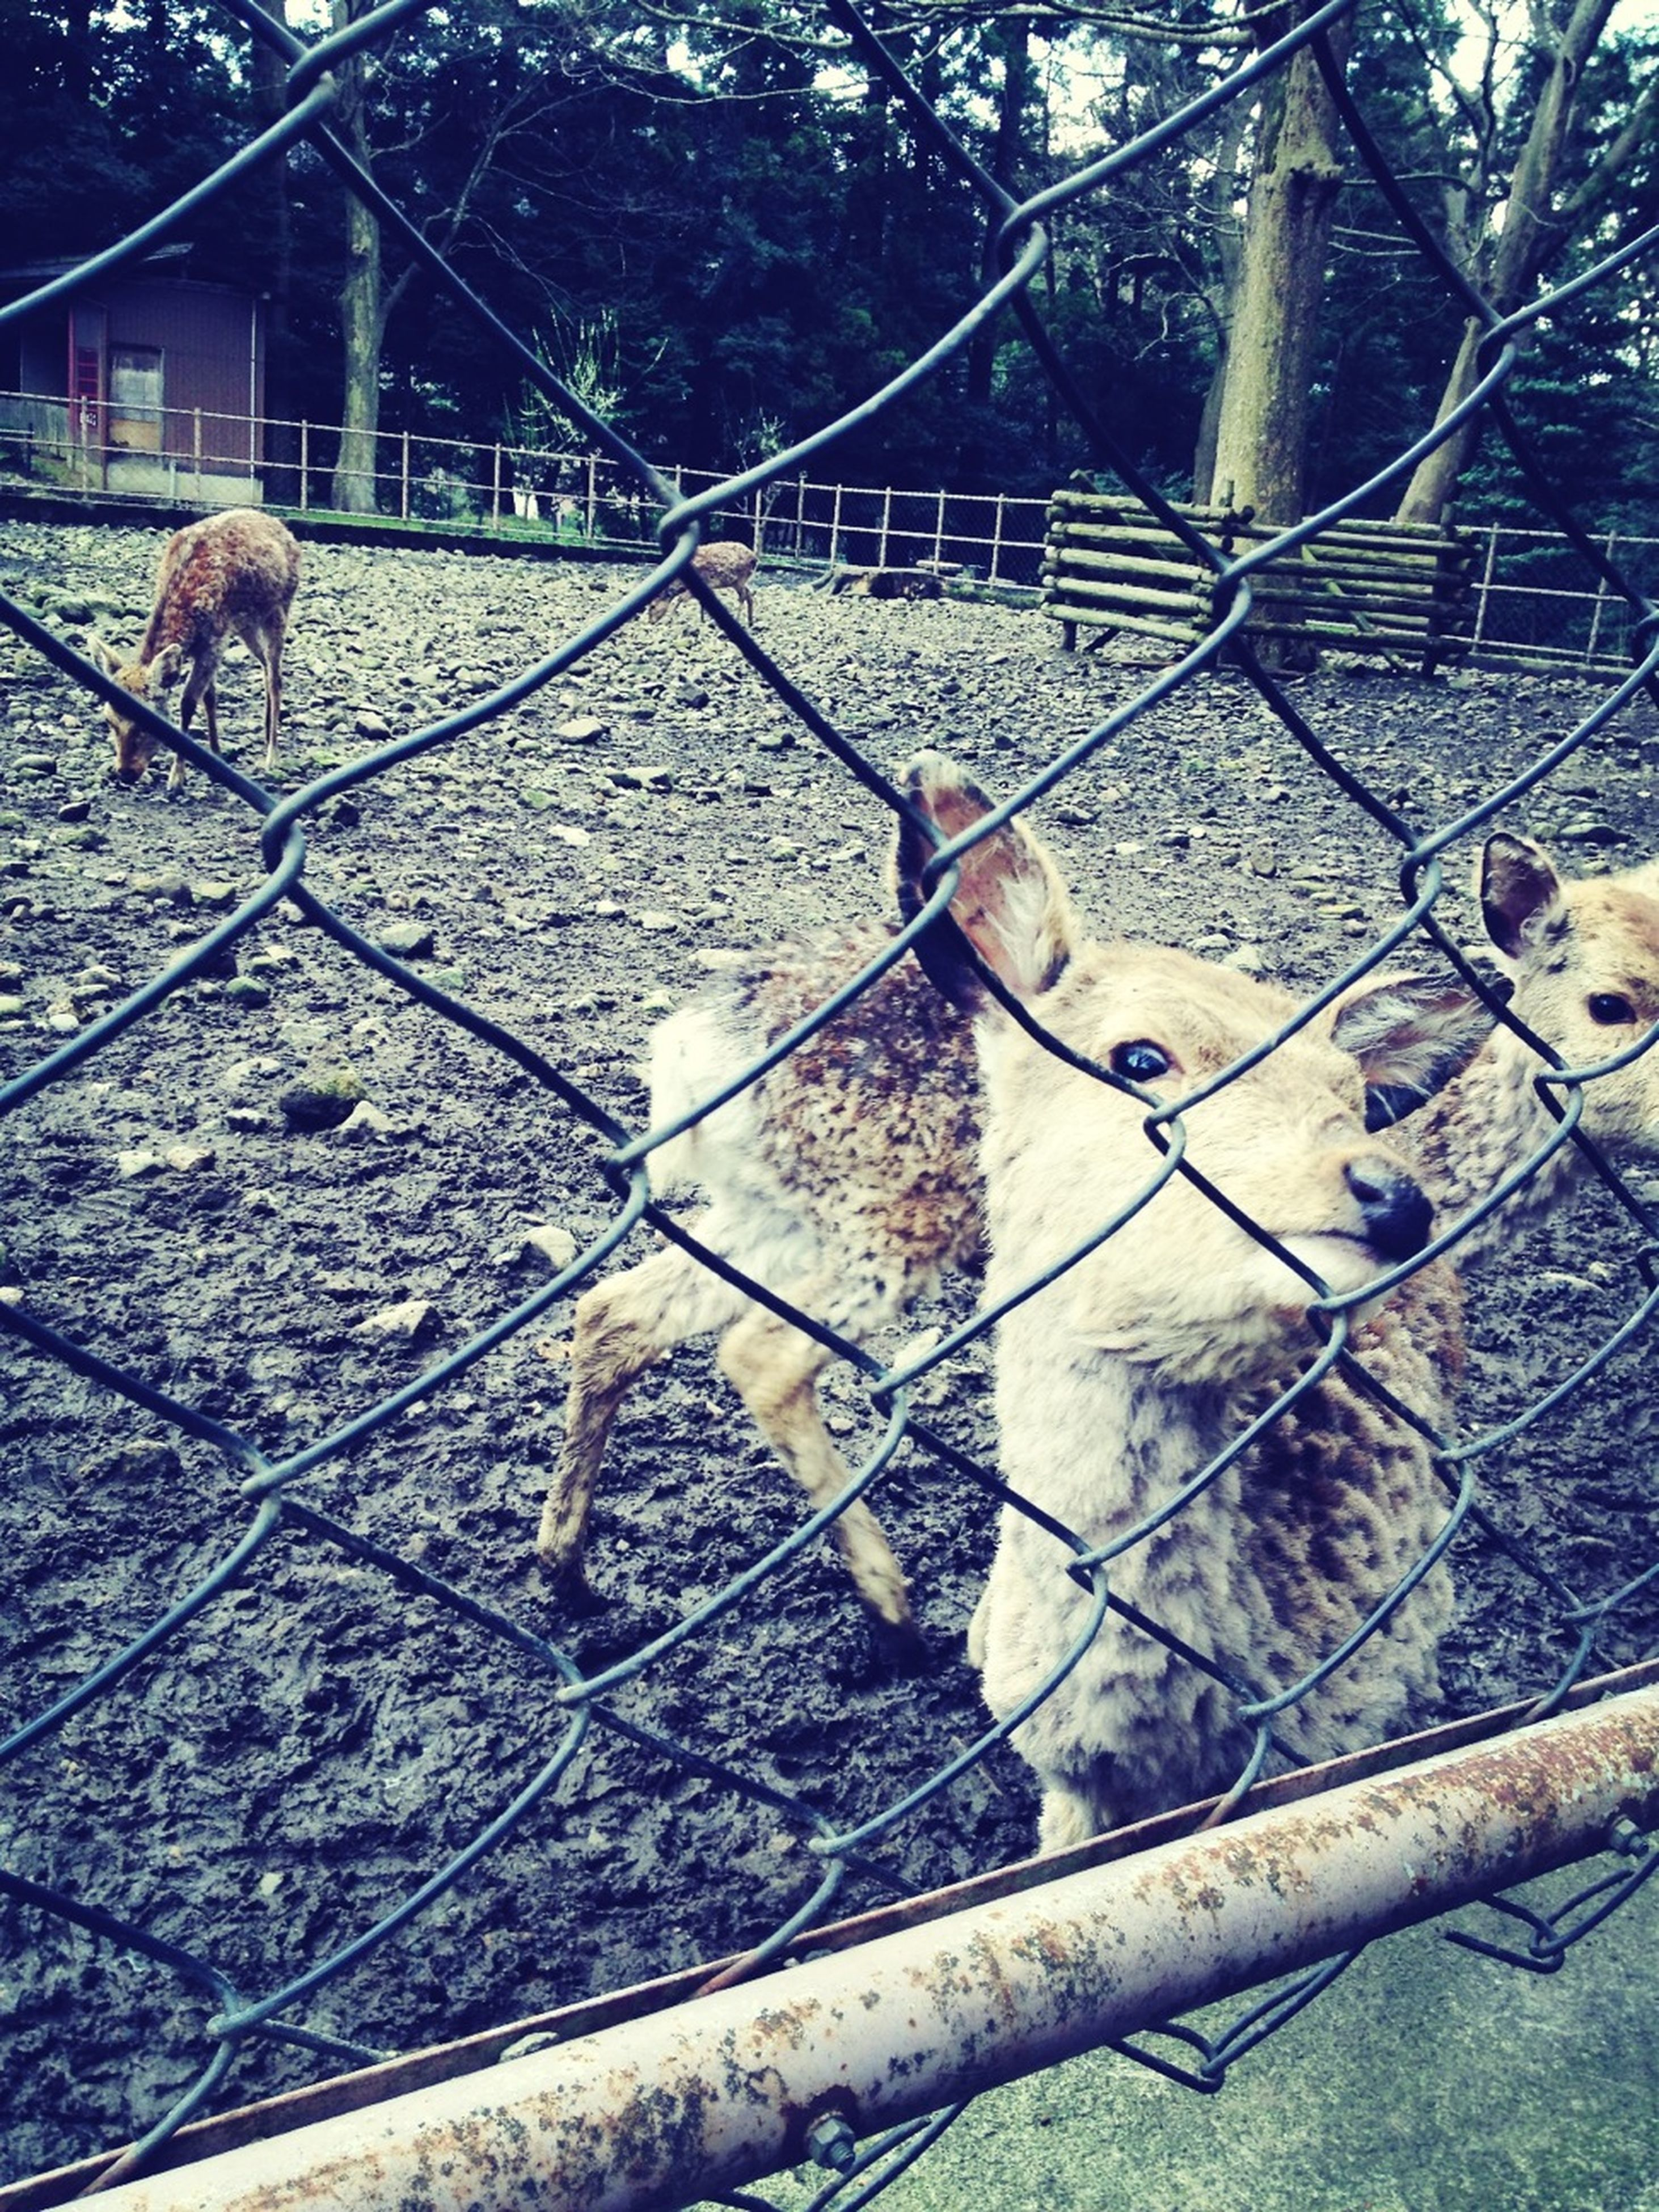 animal themes, fence, mammal, domestic animals, tree, bare tree, built structure, livestock, wildlife, building exterior, one animal, architecture, animals in the wild, chainlink fence, day, outdoors, two animals, no people, nature